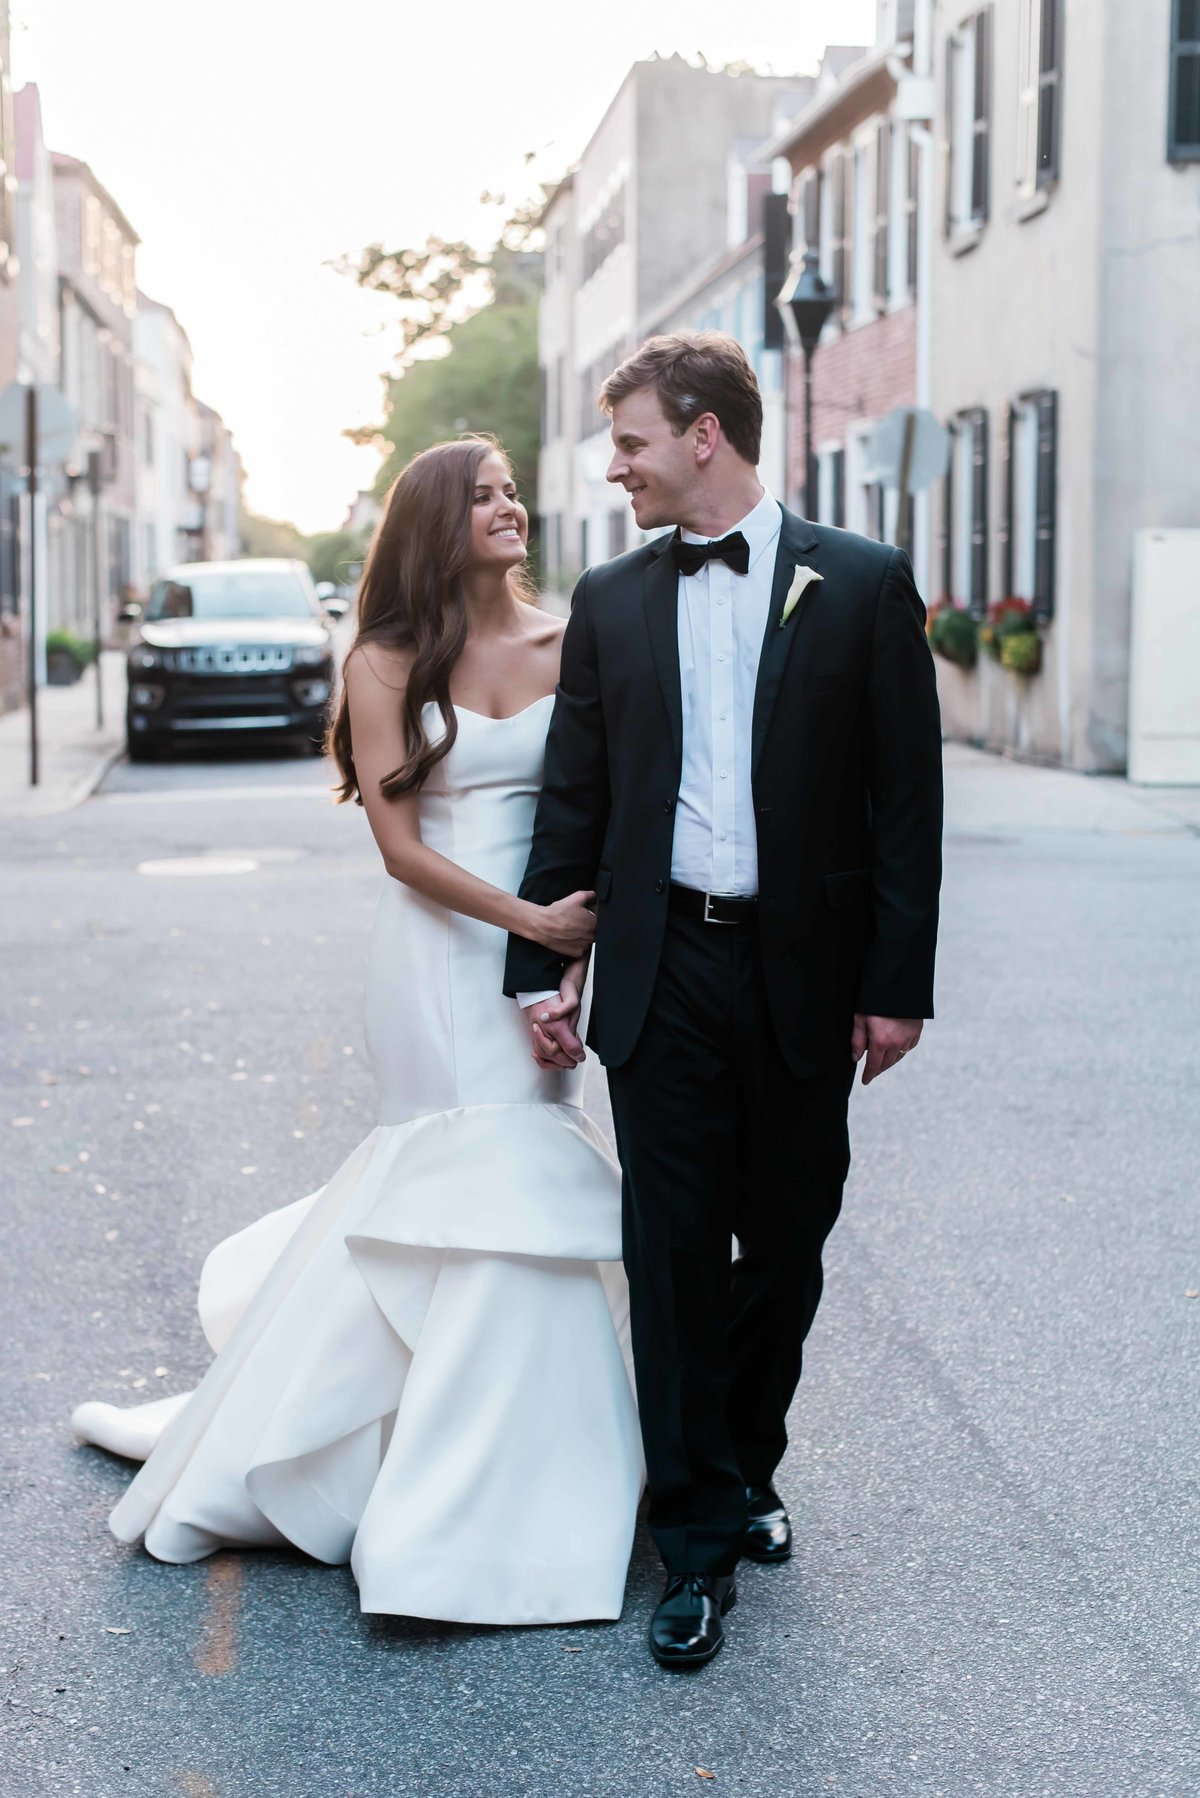 Bride and groom take a stroll through downtoan Charleston, SC at sunset